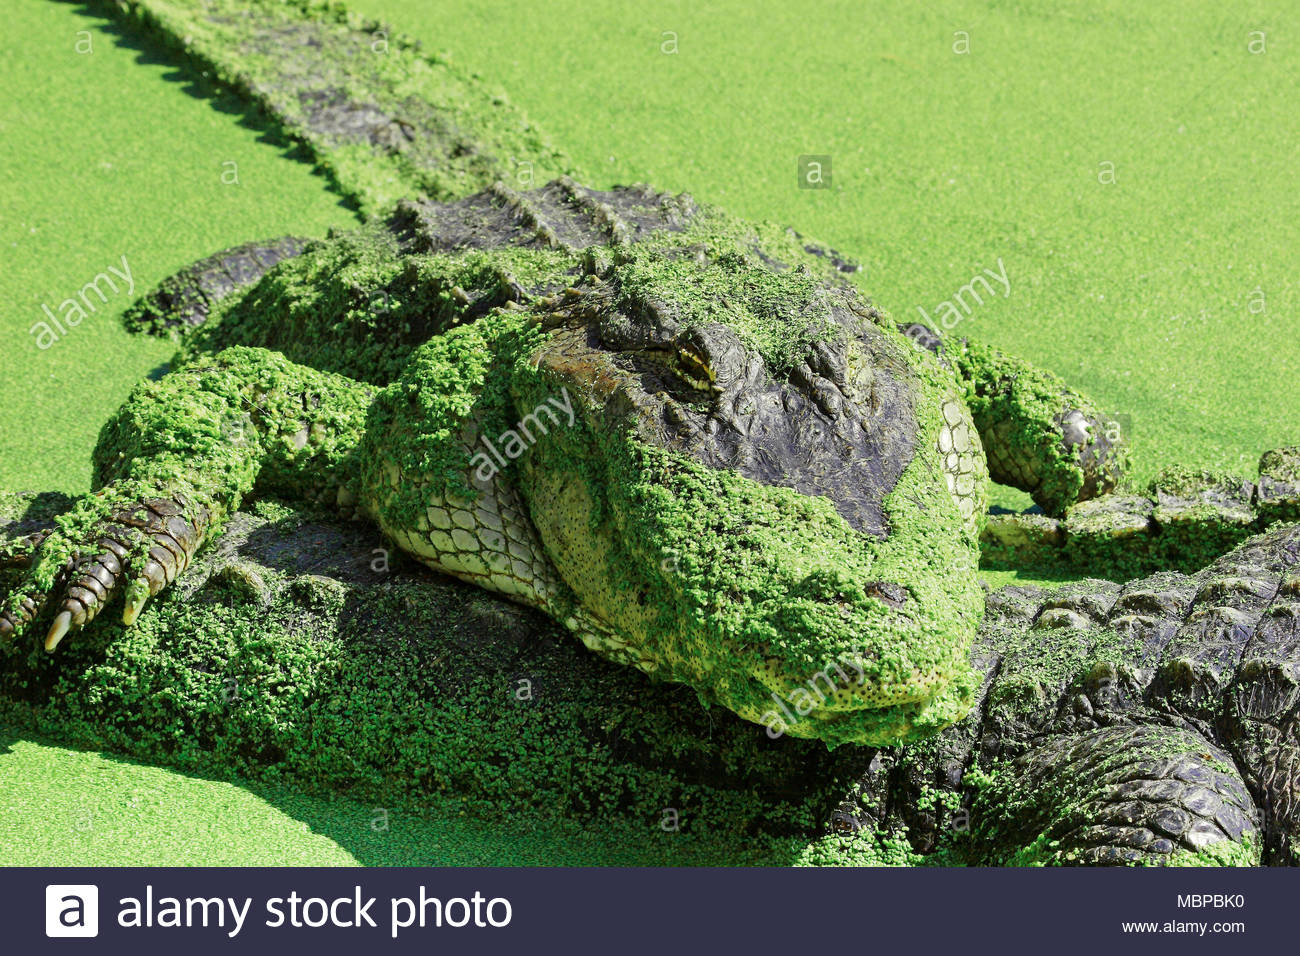 Mississippi alligator (Alligator mississippiensis) also known as American alligator, Everglades, Florida, USA - Stock Image